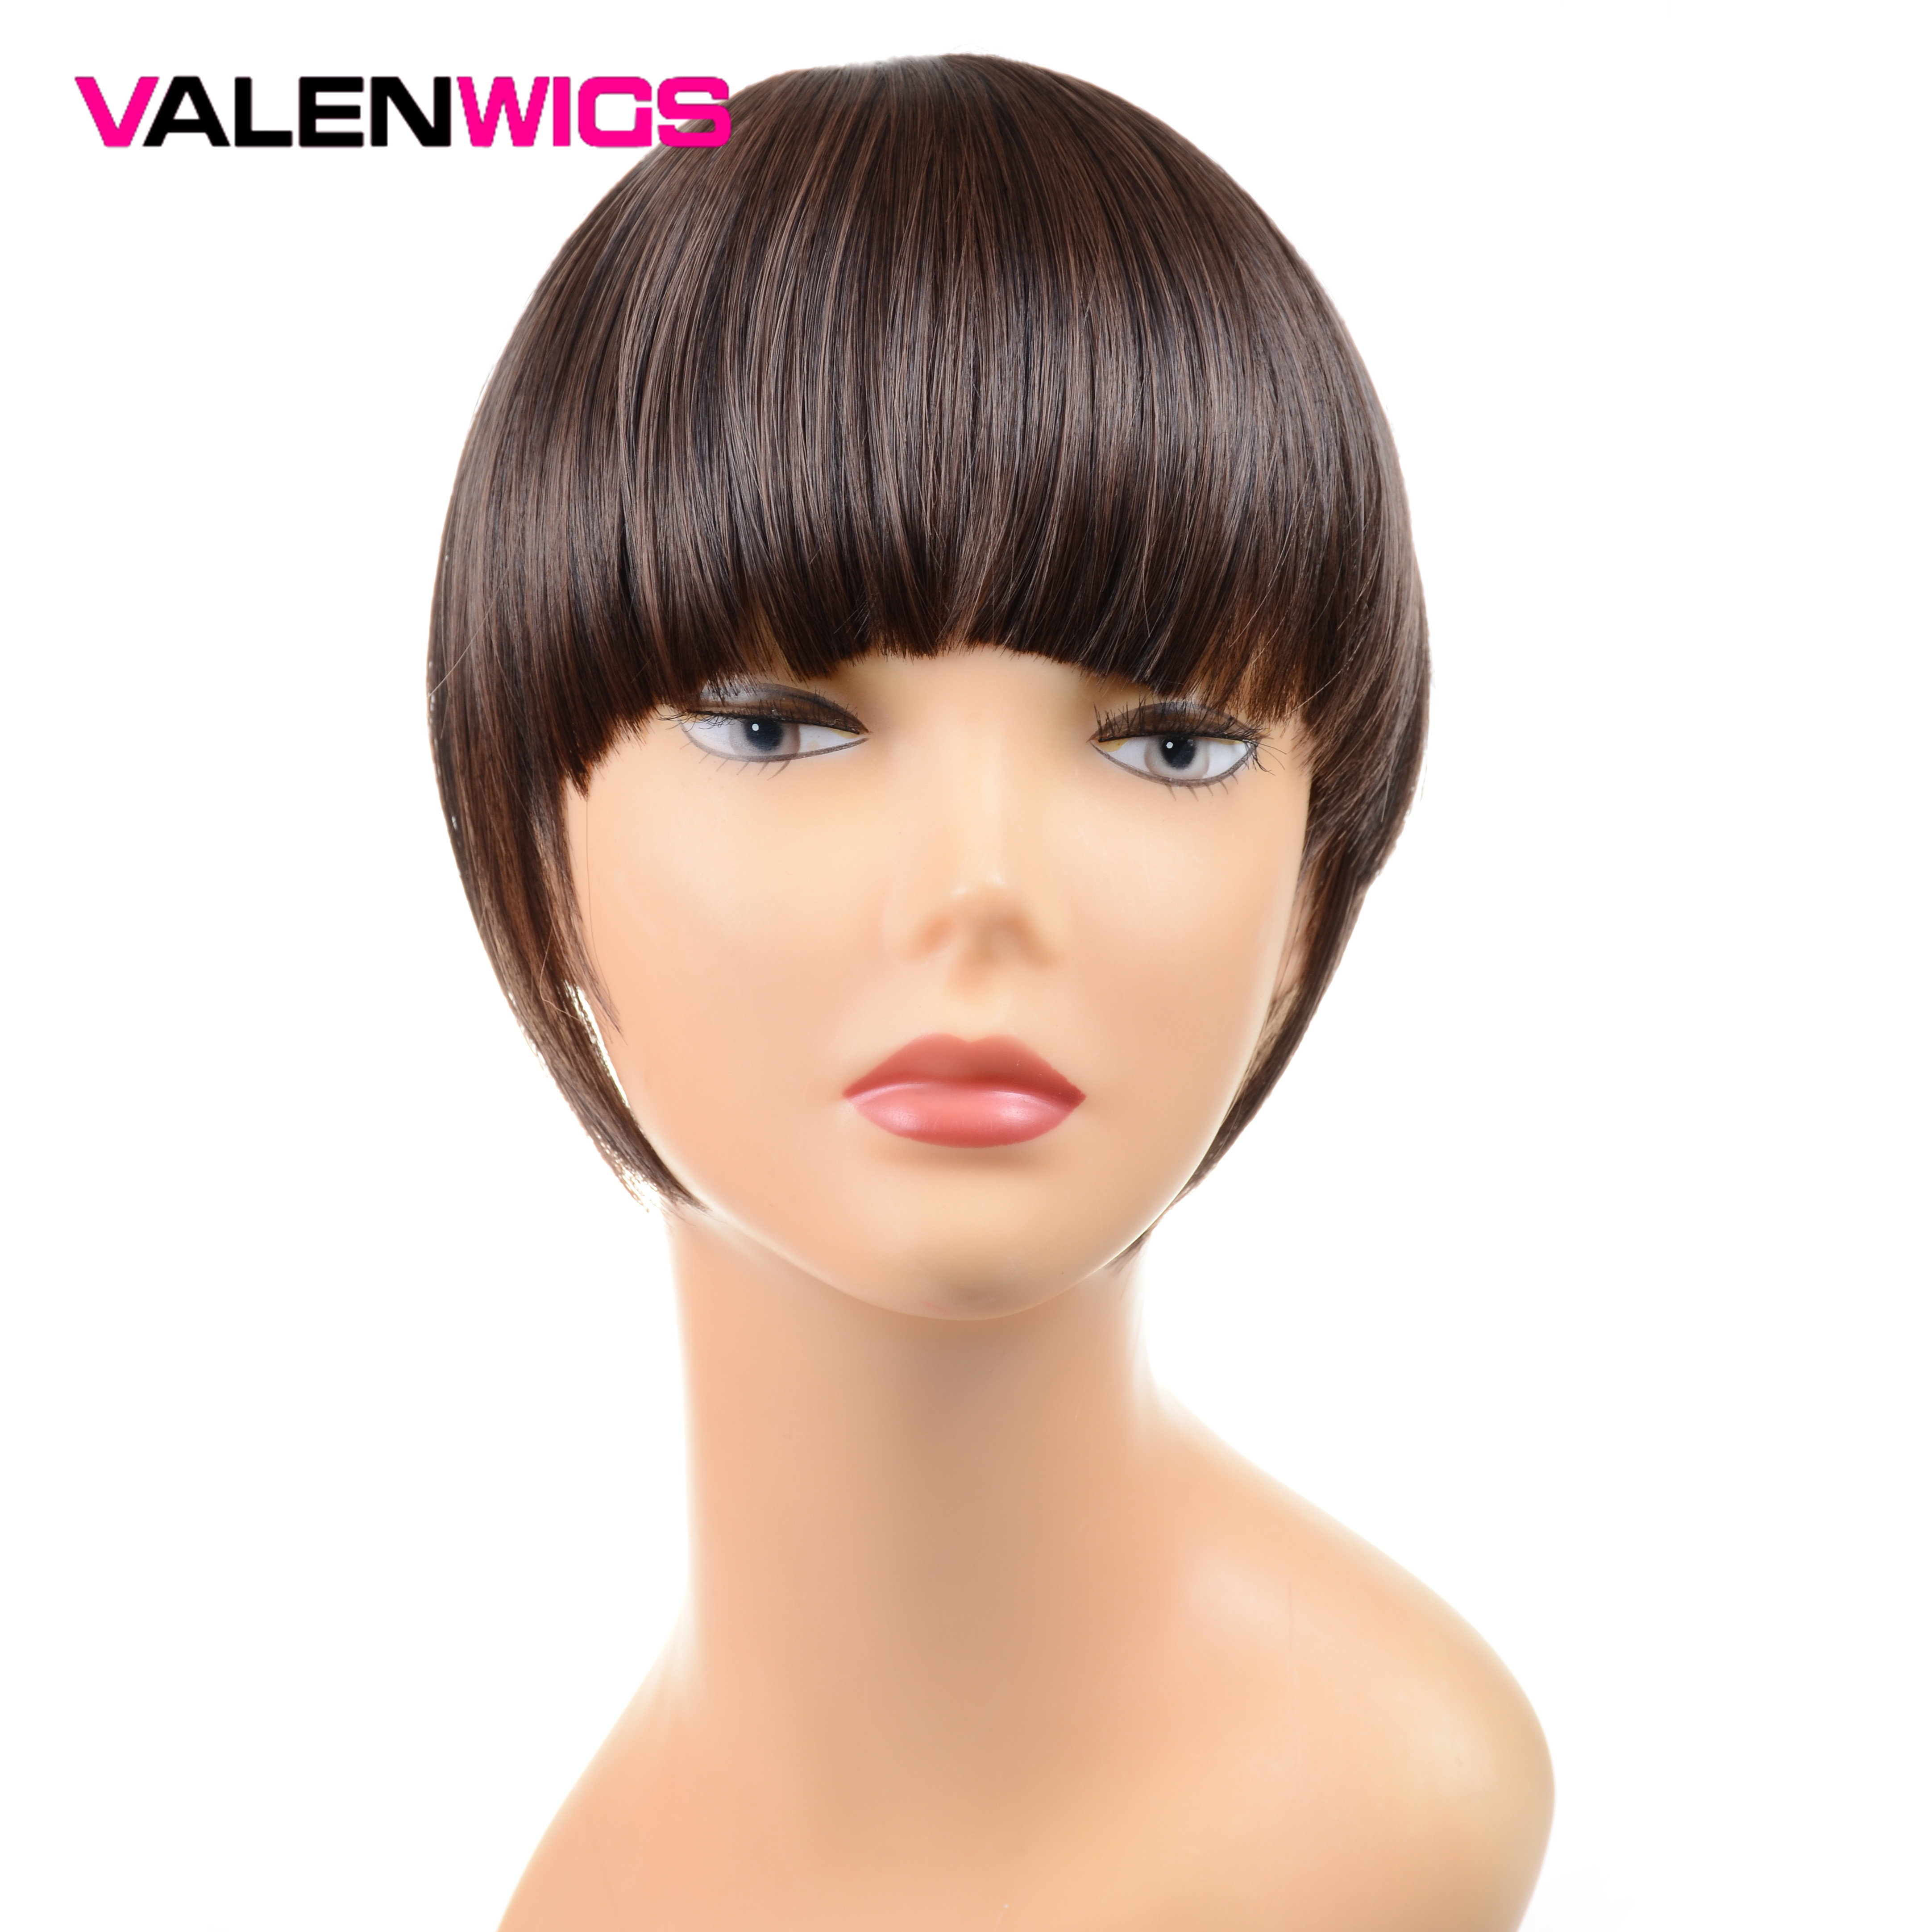 "ValentWigs 6"" False Fringe Hair Clip In Bangs One Piece Staight Synthetic Hair Extensions Front Neat Bangs Pure Color For Women"